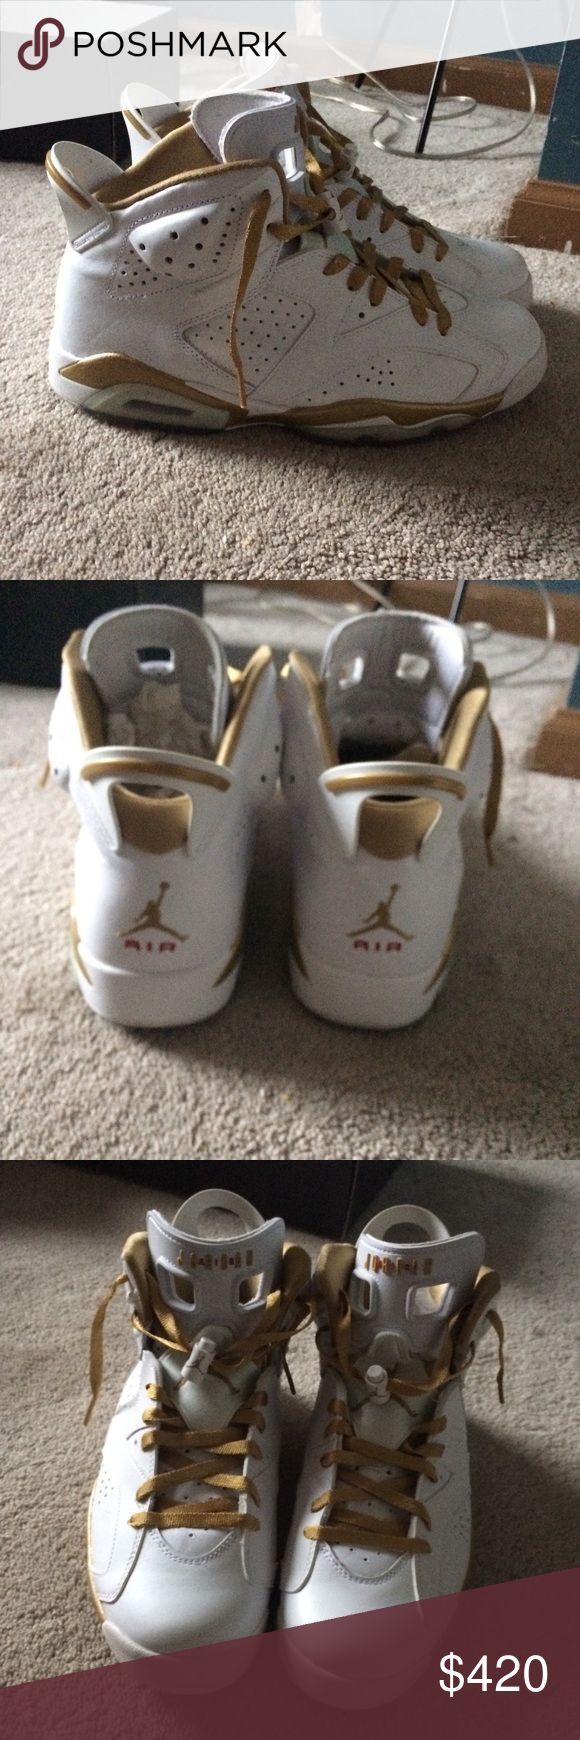 Jordan 6 rare white and gold edition size 10 GMP 6s white and gold size 10. Really rare Jordan limited edition comes with box and American flag. Shoes barely have been worn. As always my prices start pretty high but I'm always down to negotiate. Jordan Shoes Sneakers